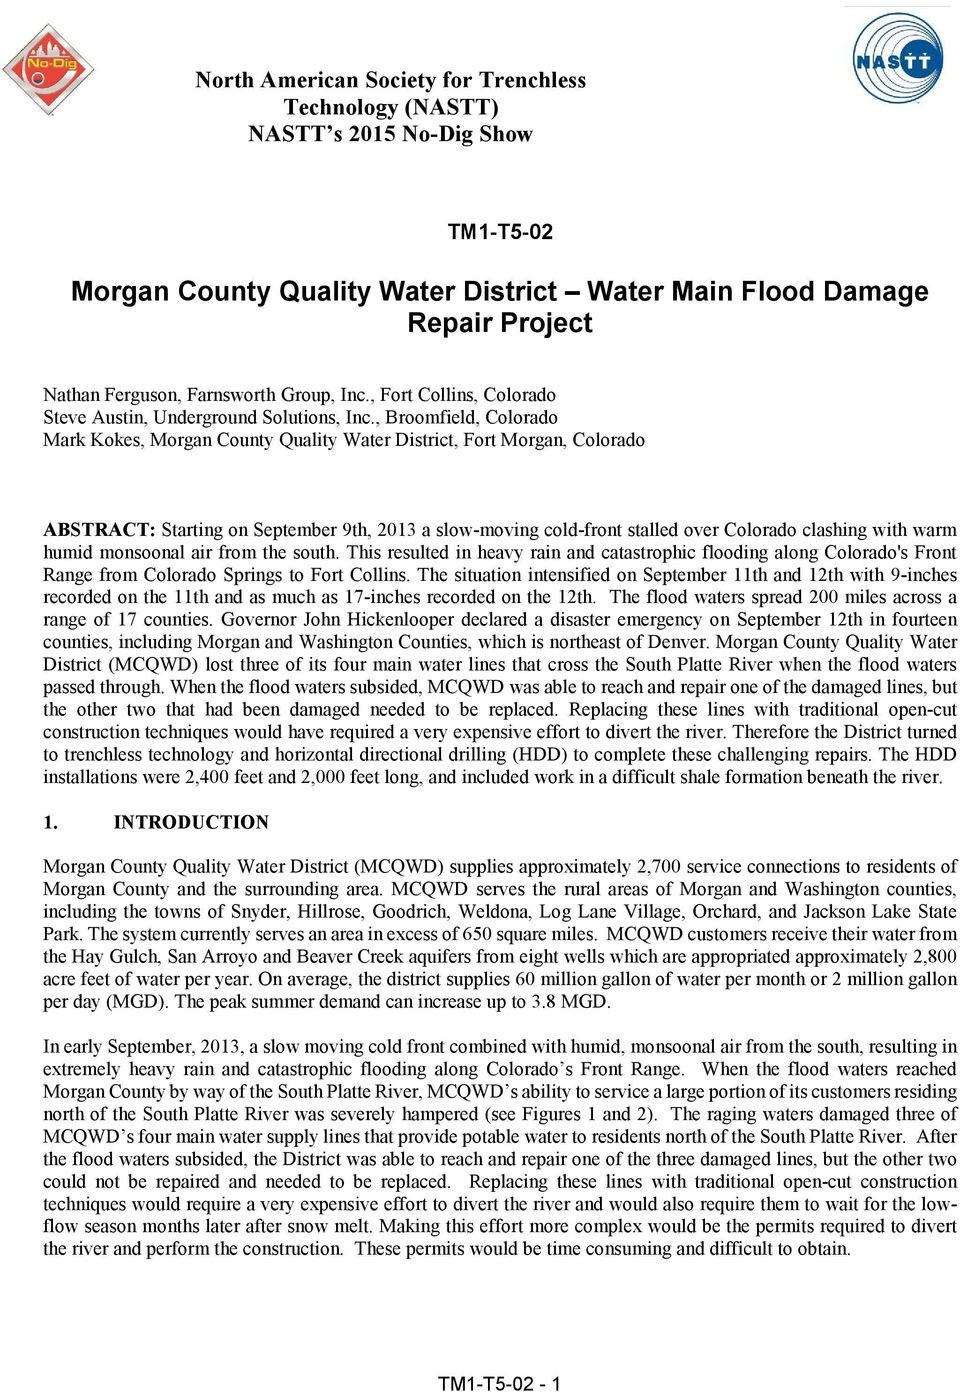 , Broomfield, Colorado Mark Kokes, Morgan County Quality Water District, Fort Morgan, Colorado ABSTRACT: Starting on September 9th, 2013 a slow-moving cold-front stalled over Colorado clashing with